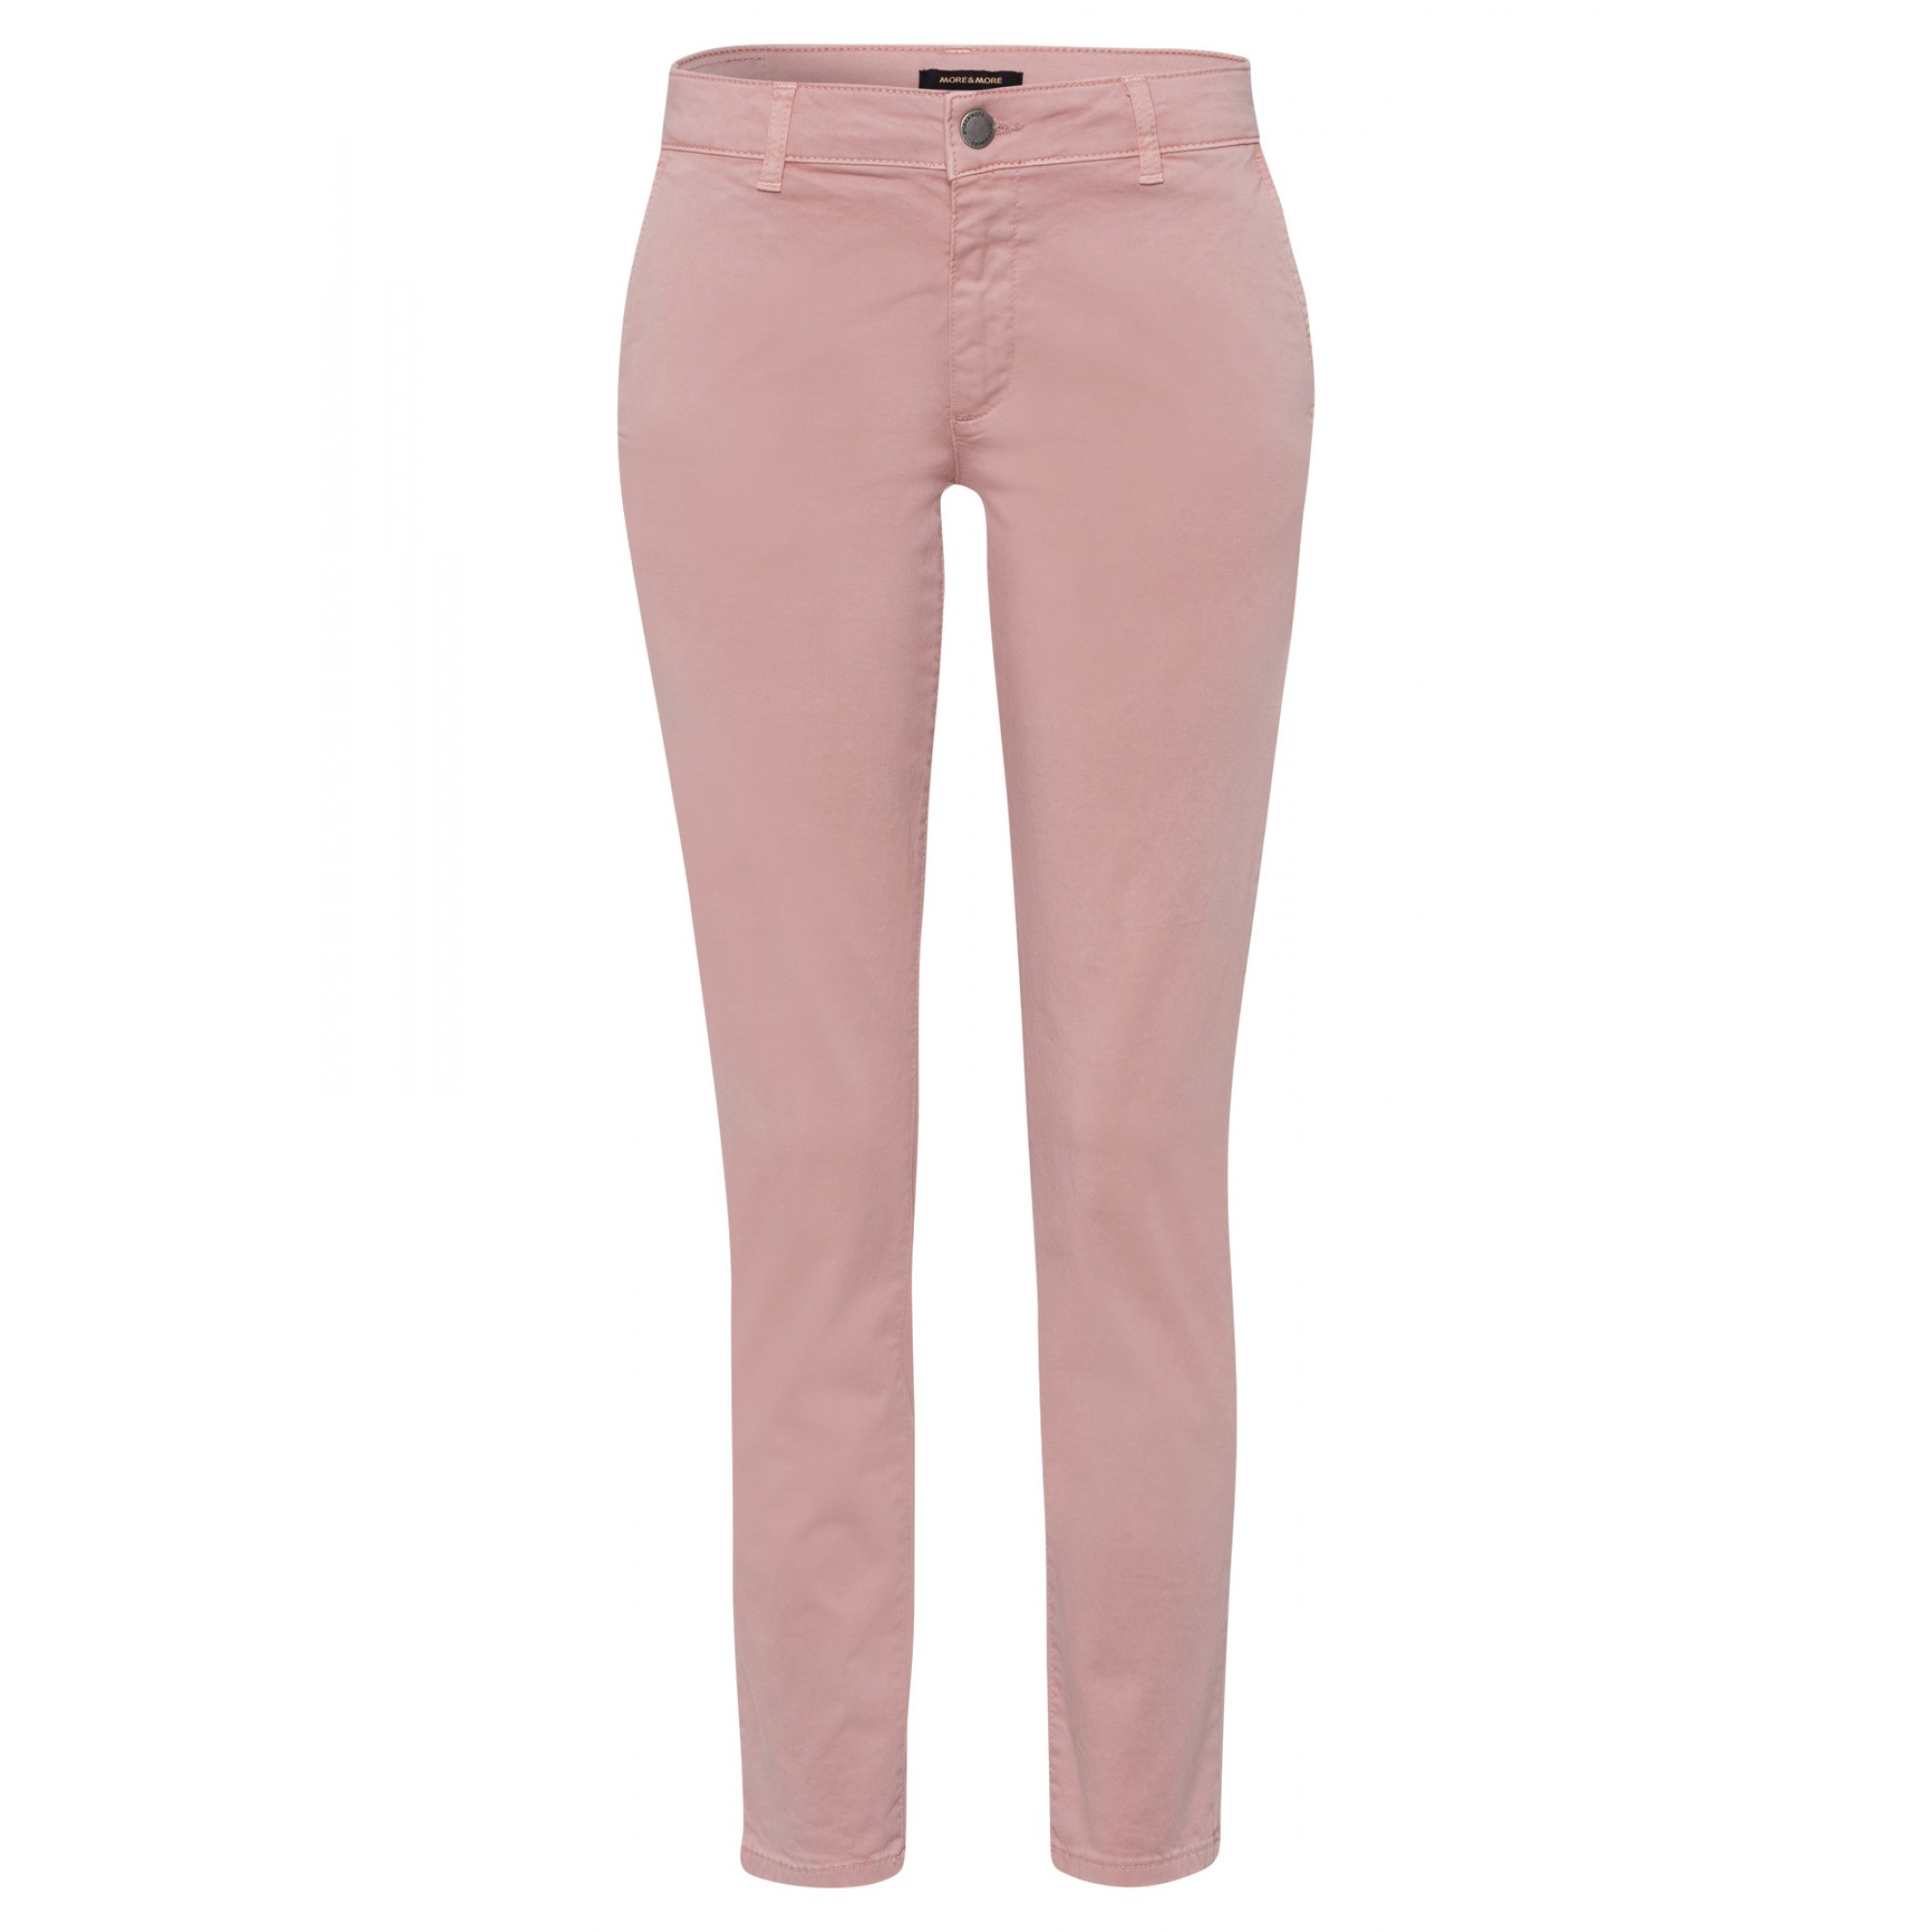 Baumwoll/Stretch Chino, rosé 01074010-0814 1